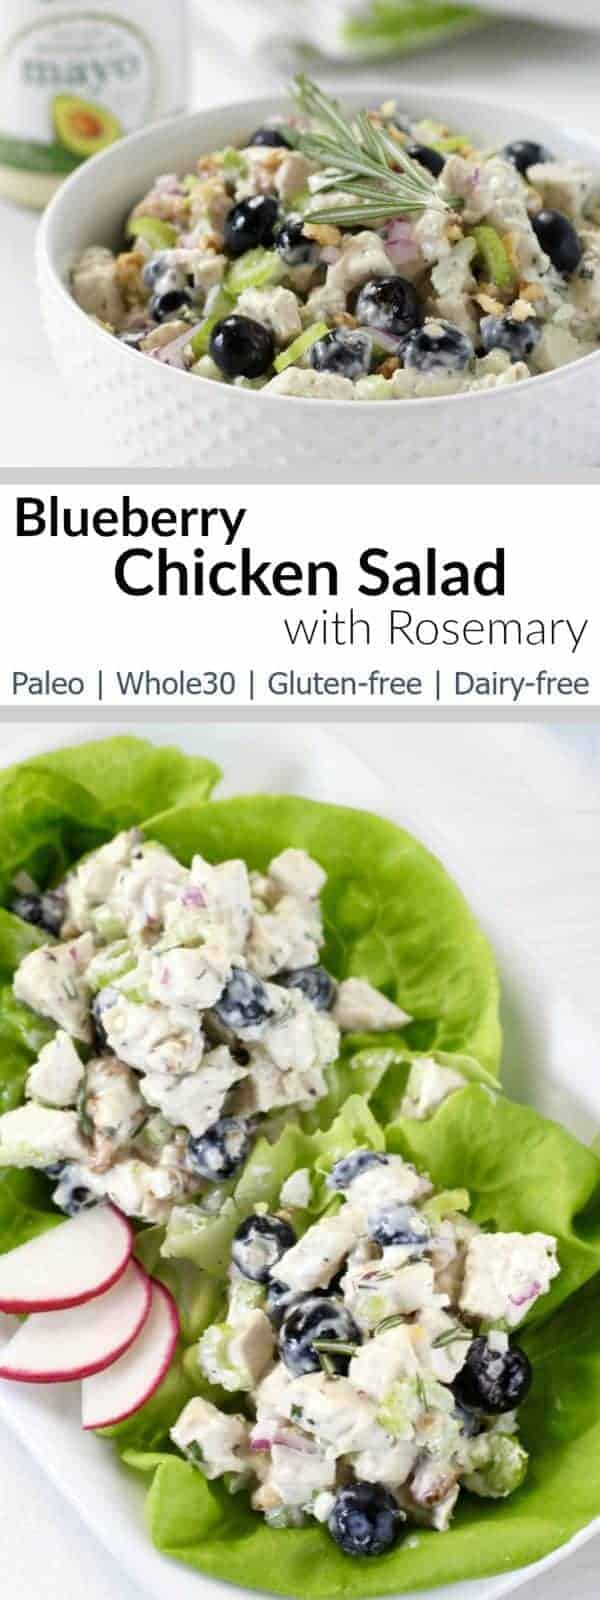 ur Blueberry Chicken Salad with Rosemary is easy enough for a weeknight dinner yet fancy enough for special occasions| Whole30| Paleo | Dairy-free | Gluten-free | https://therealfoodrds.com